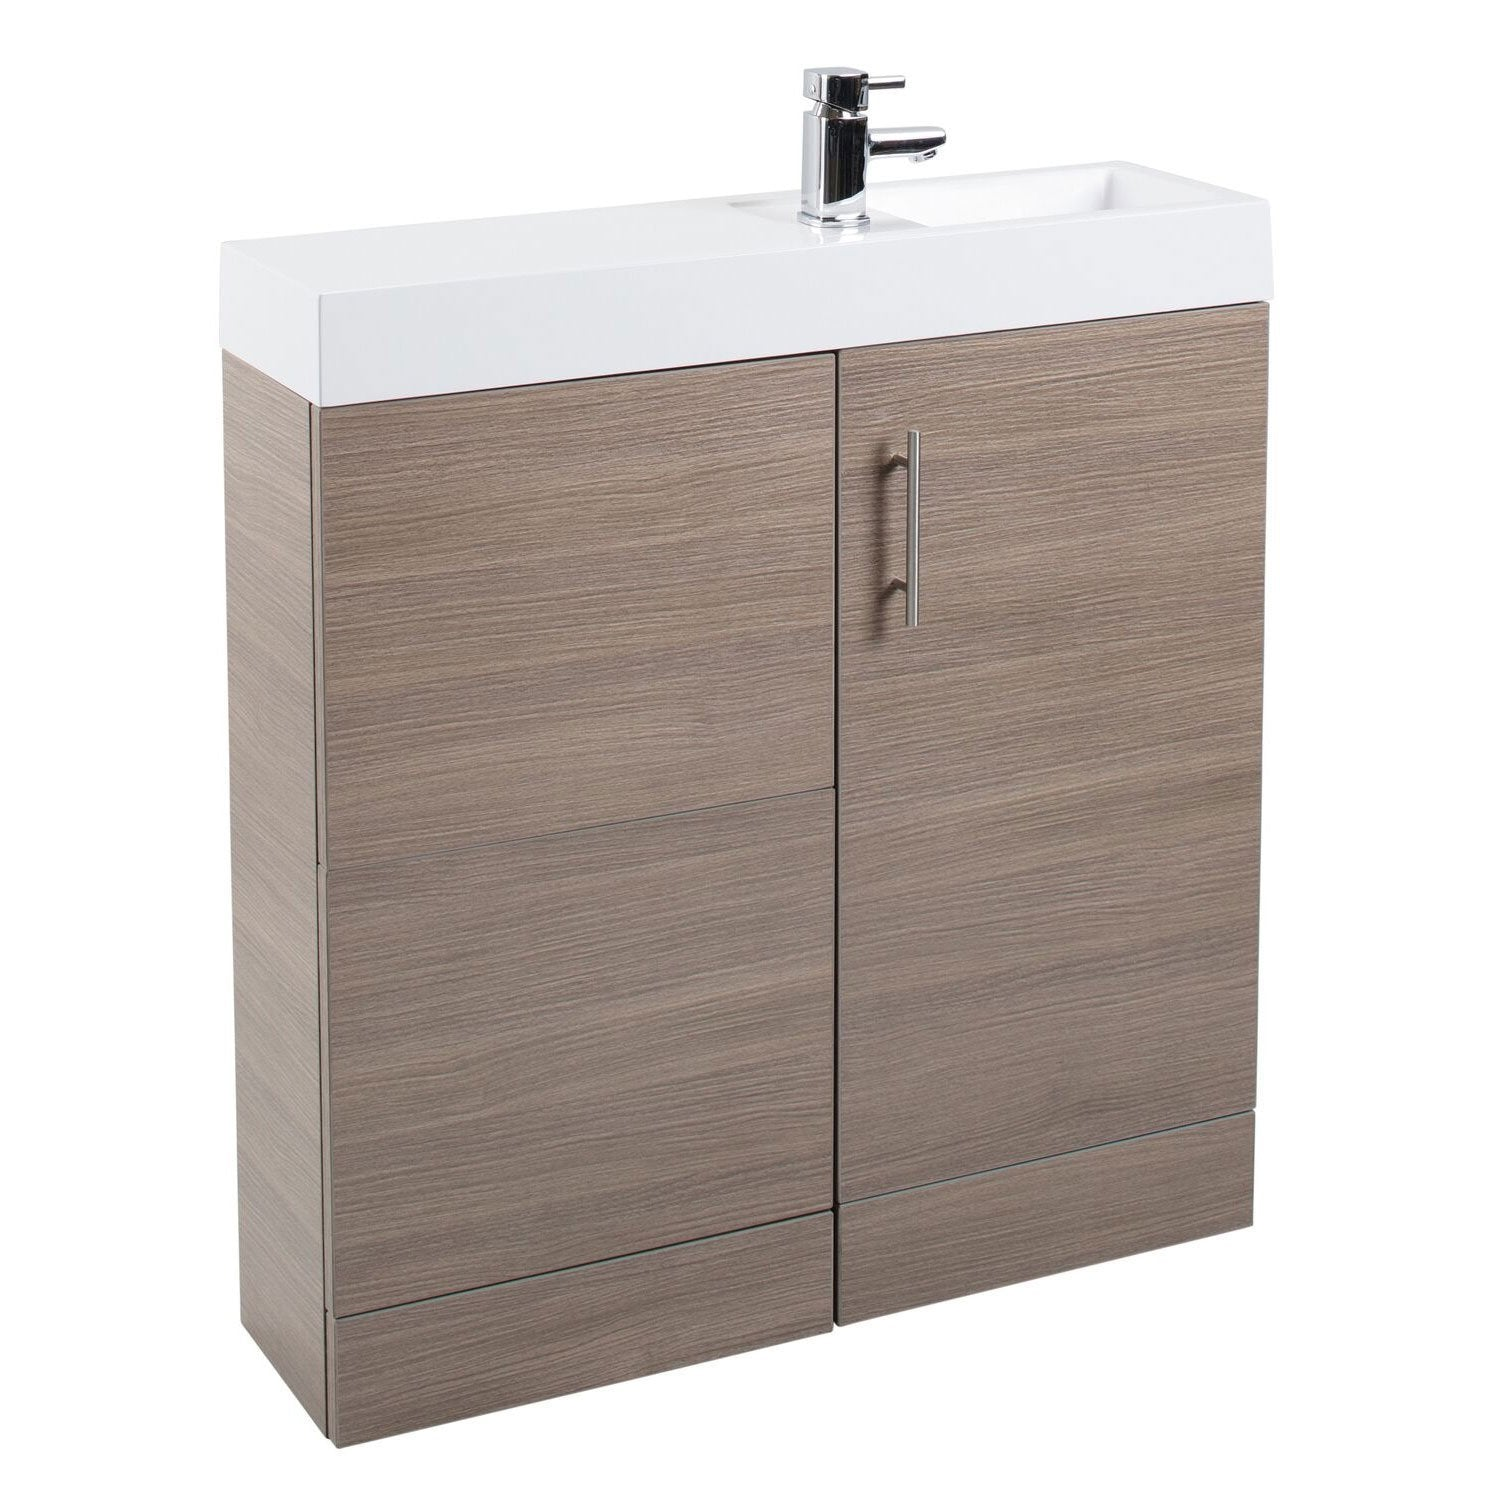 Cassellie Cube Plus Combination Unit with Basin - 800mm Wide - Medium Oak